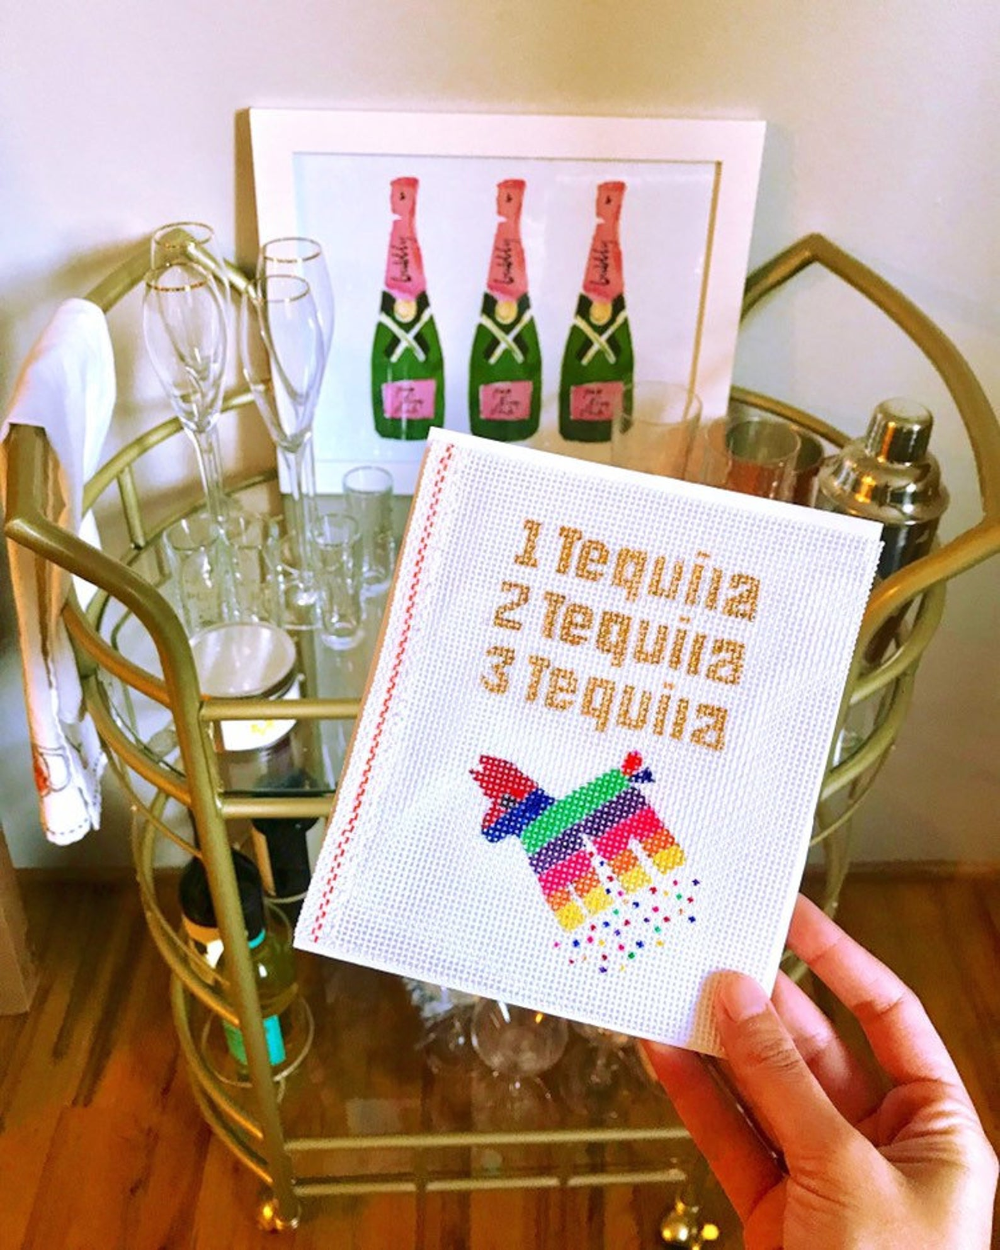 1 Tequila 2 Tequila 3 Tequila Floor Etsy In 2020 Needlepoint Needlepoint Canvases Tequila